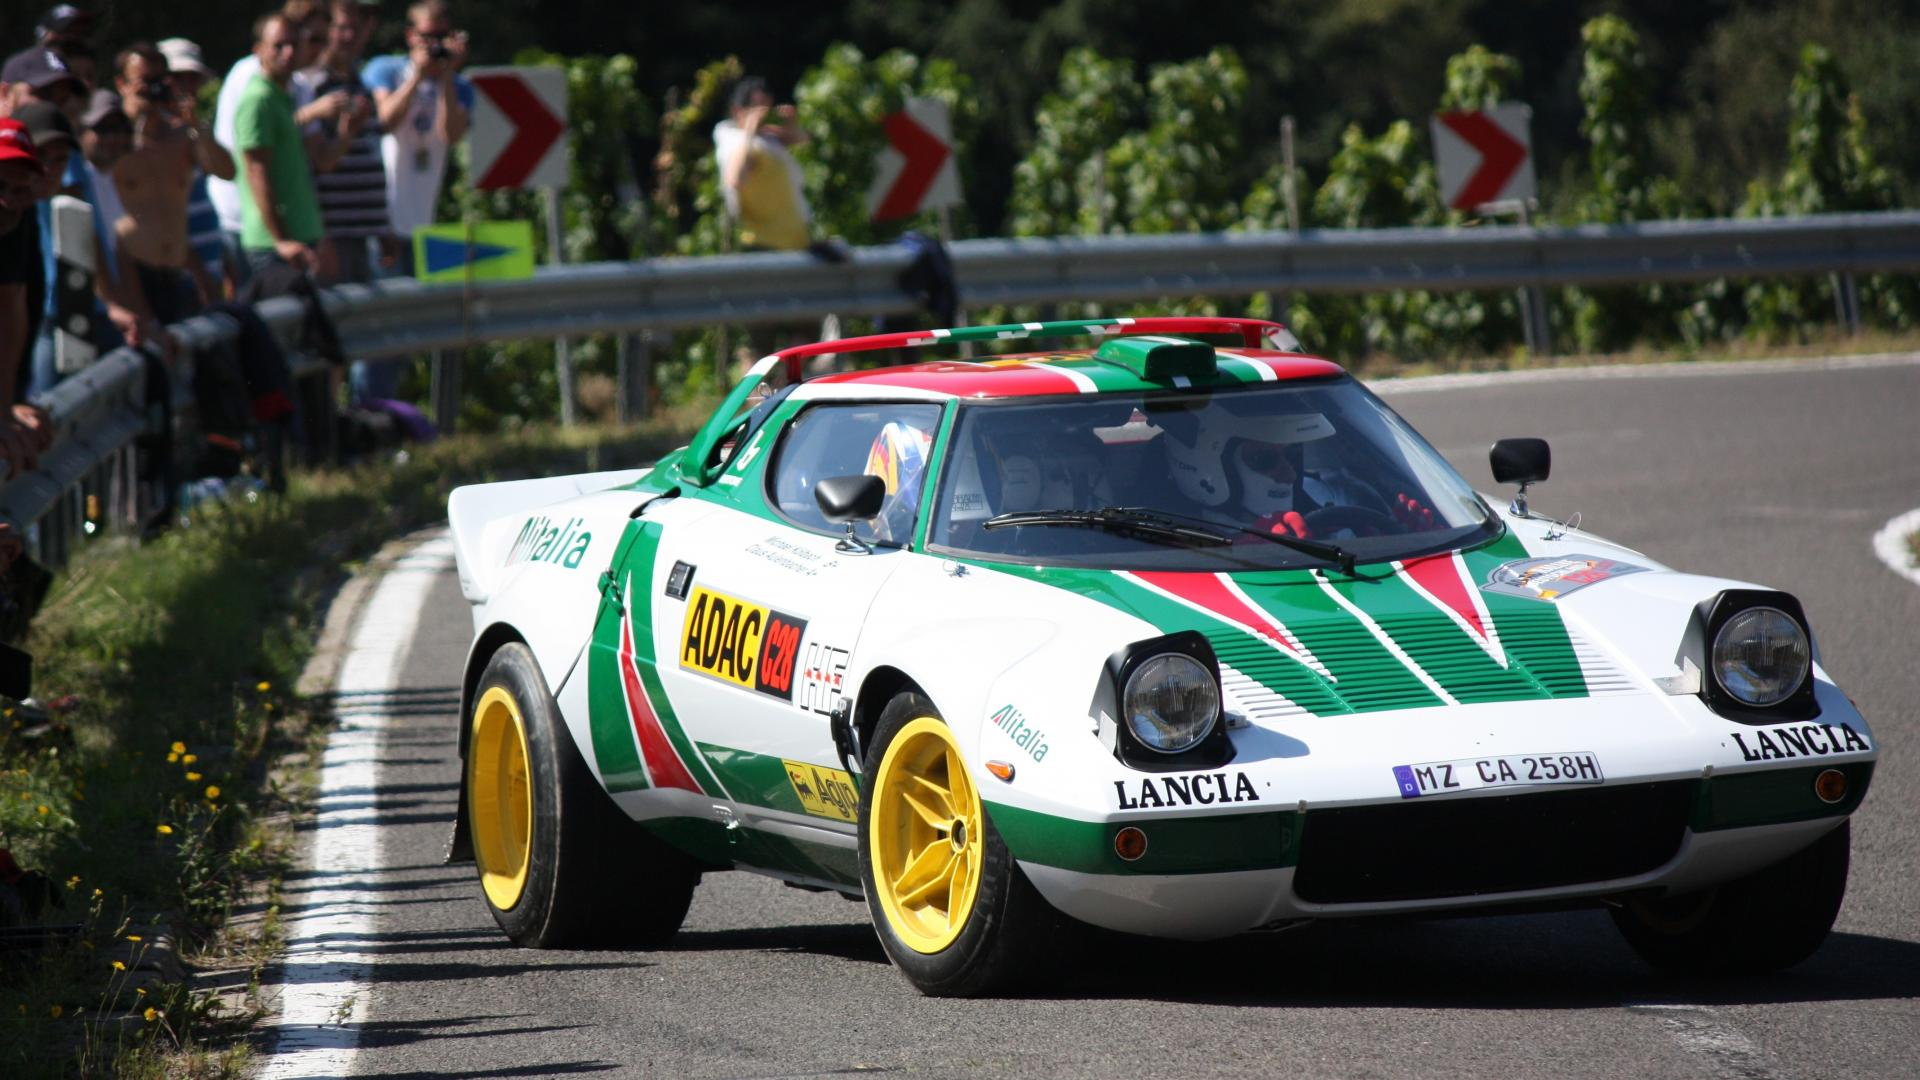 Group B Rally Car Wallpaper Images Pictures   Becuo 1920x1080